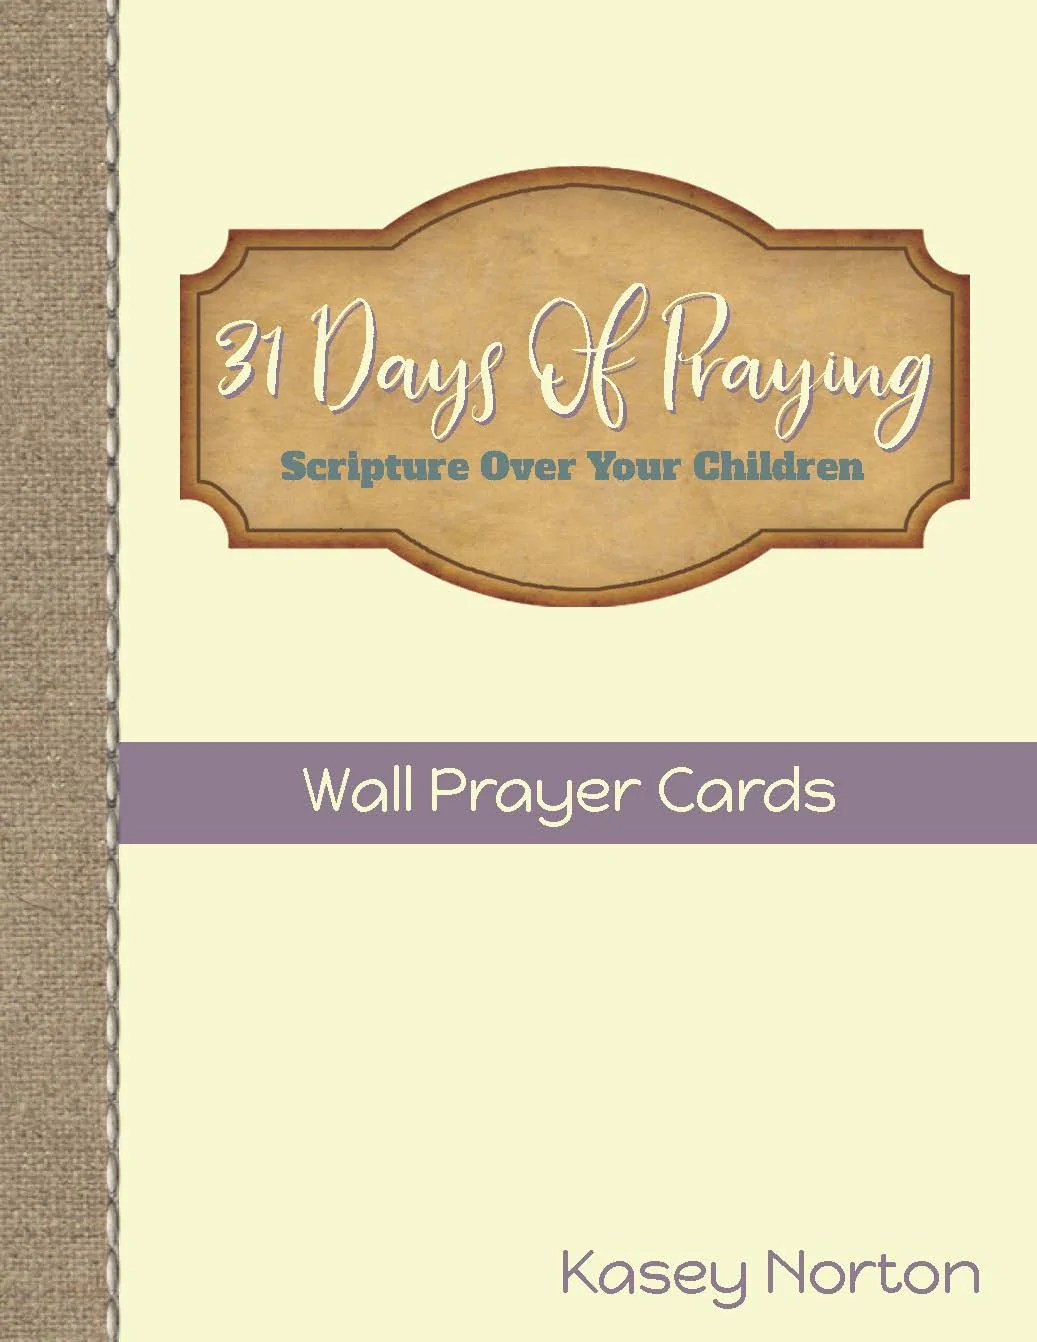 31 Days of Praying - Wall Prayer Cards - Walking Redeemed